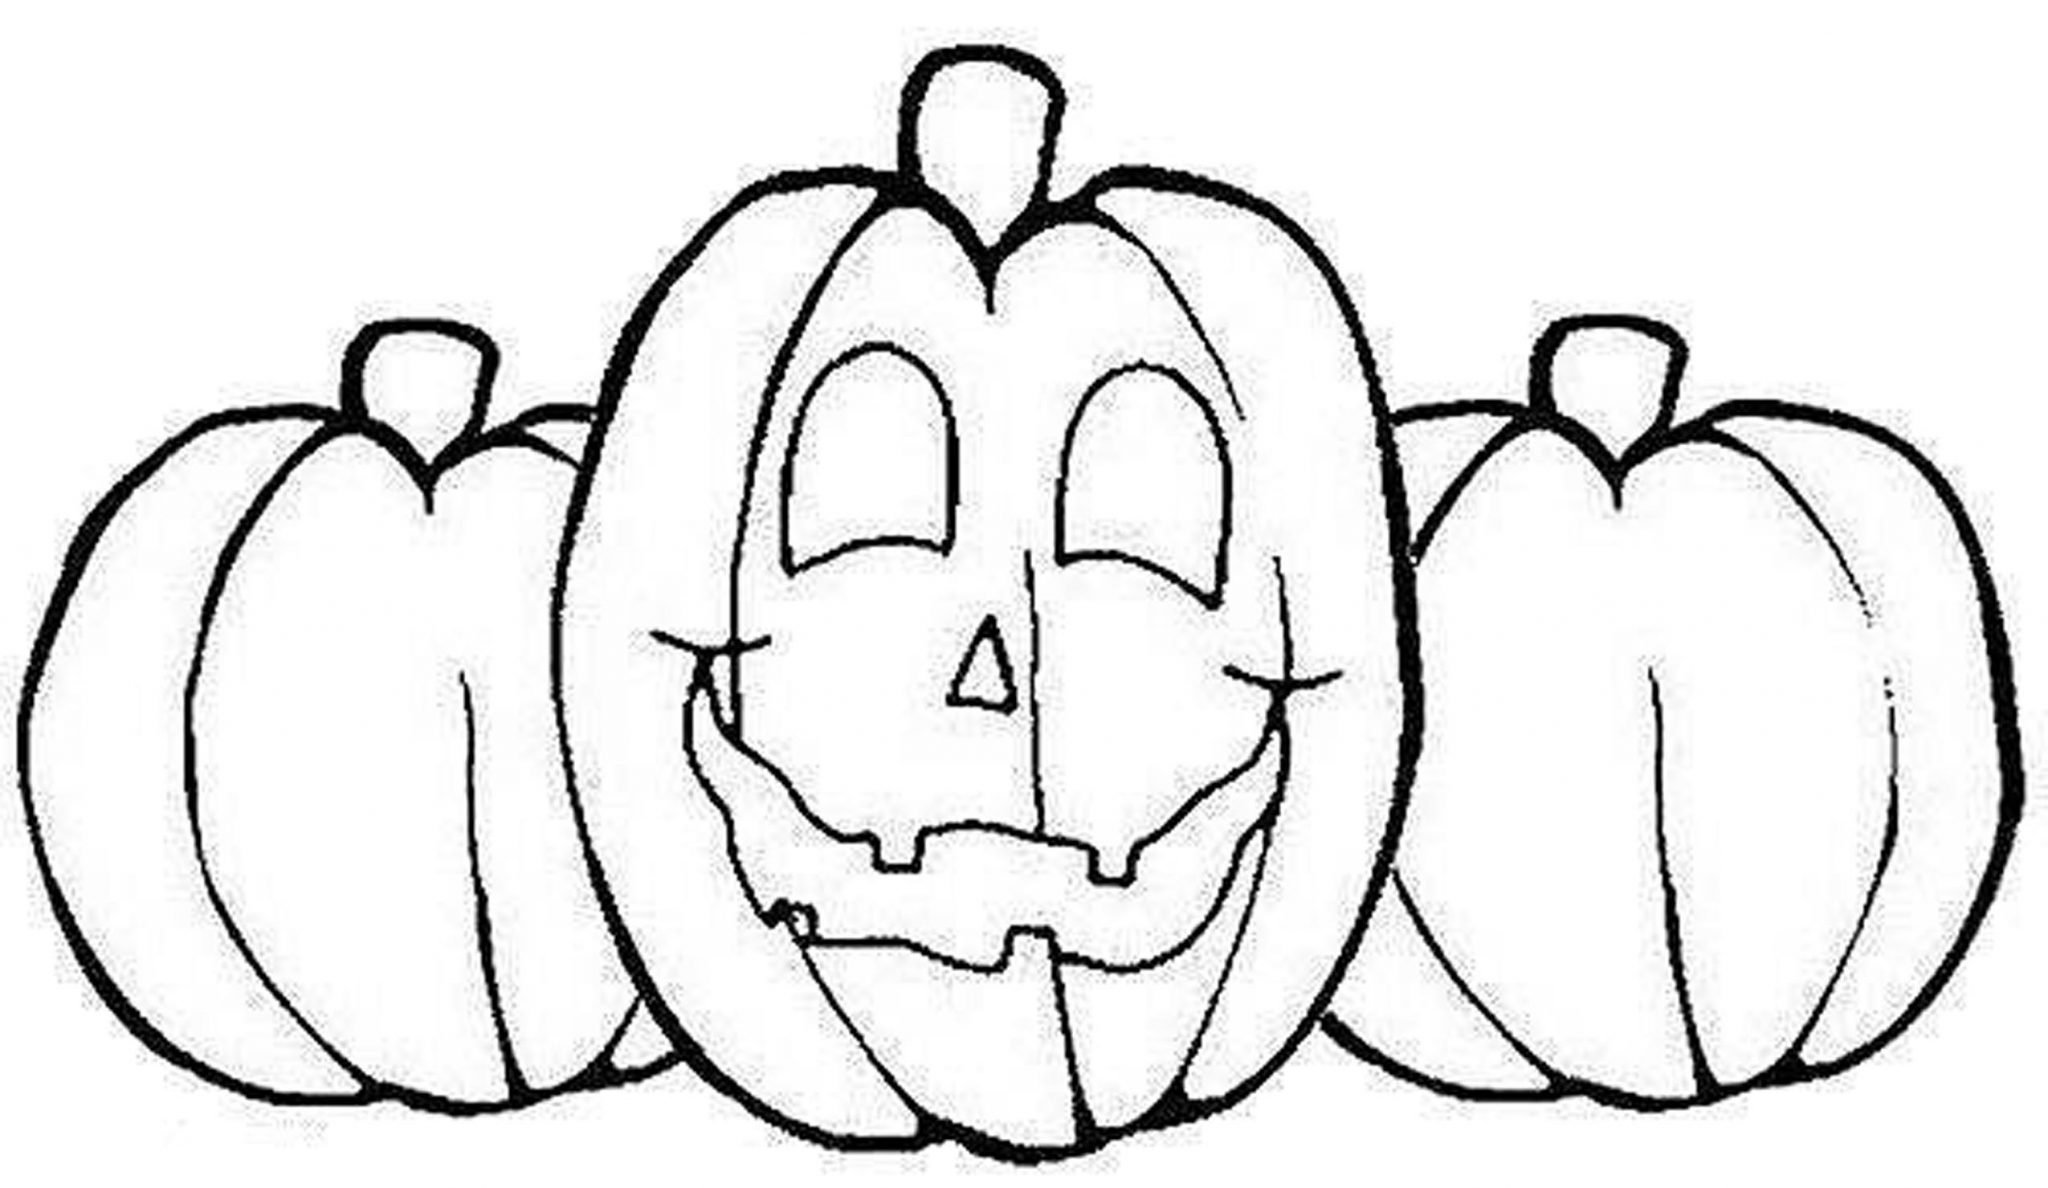 Pumpkin coloring pages printable for Pumpkin coloring pages free printable